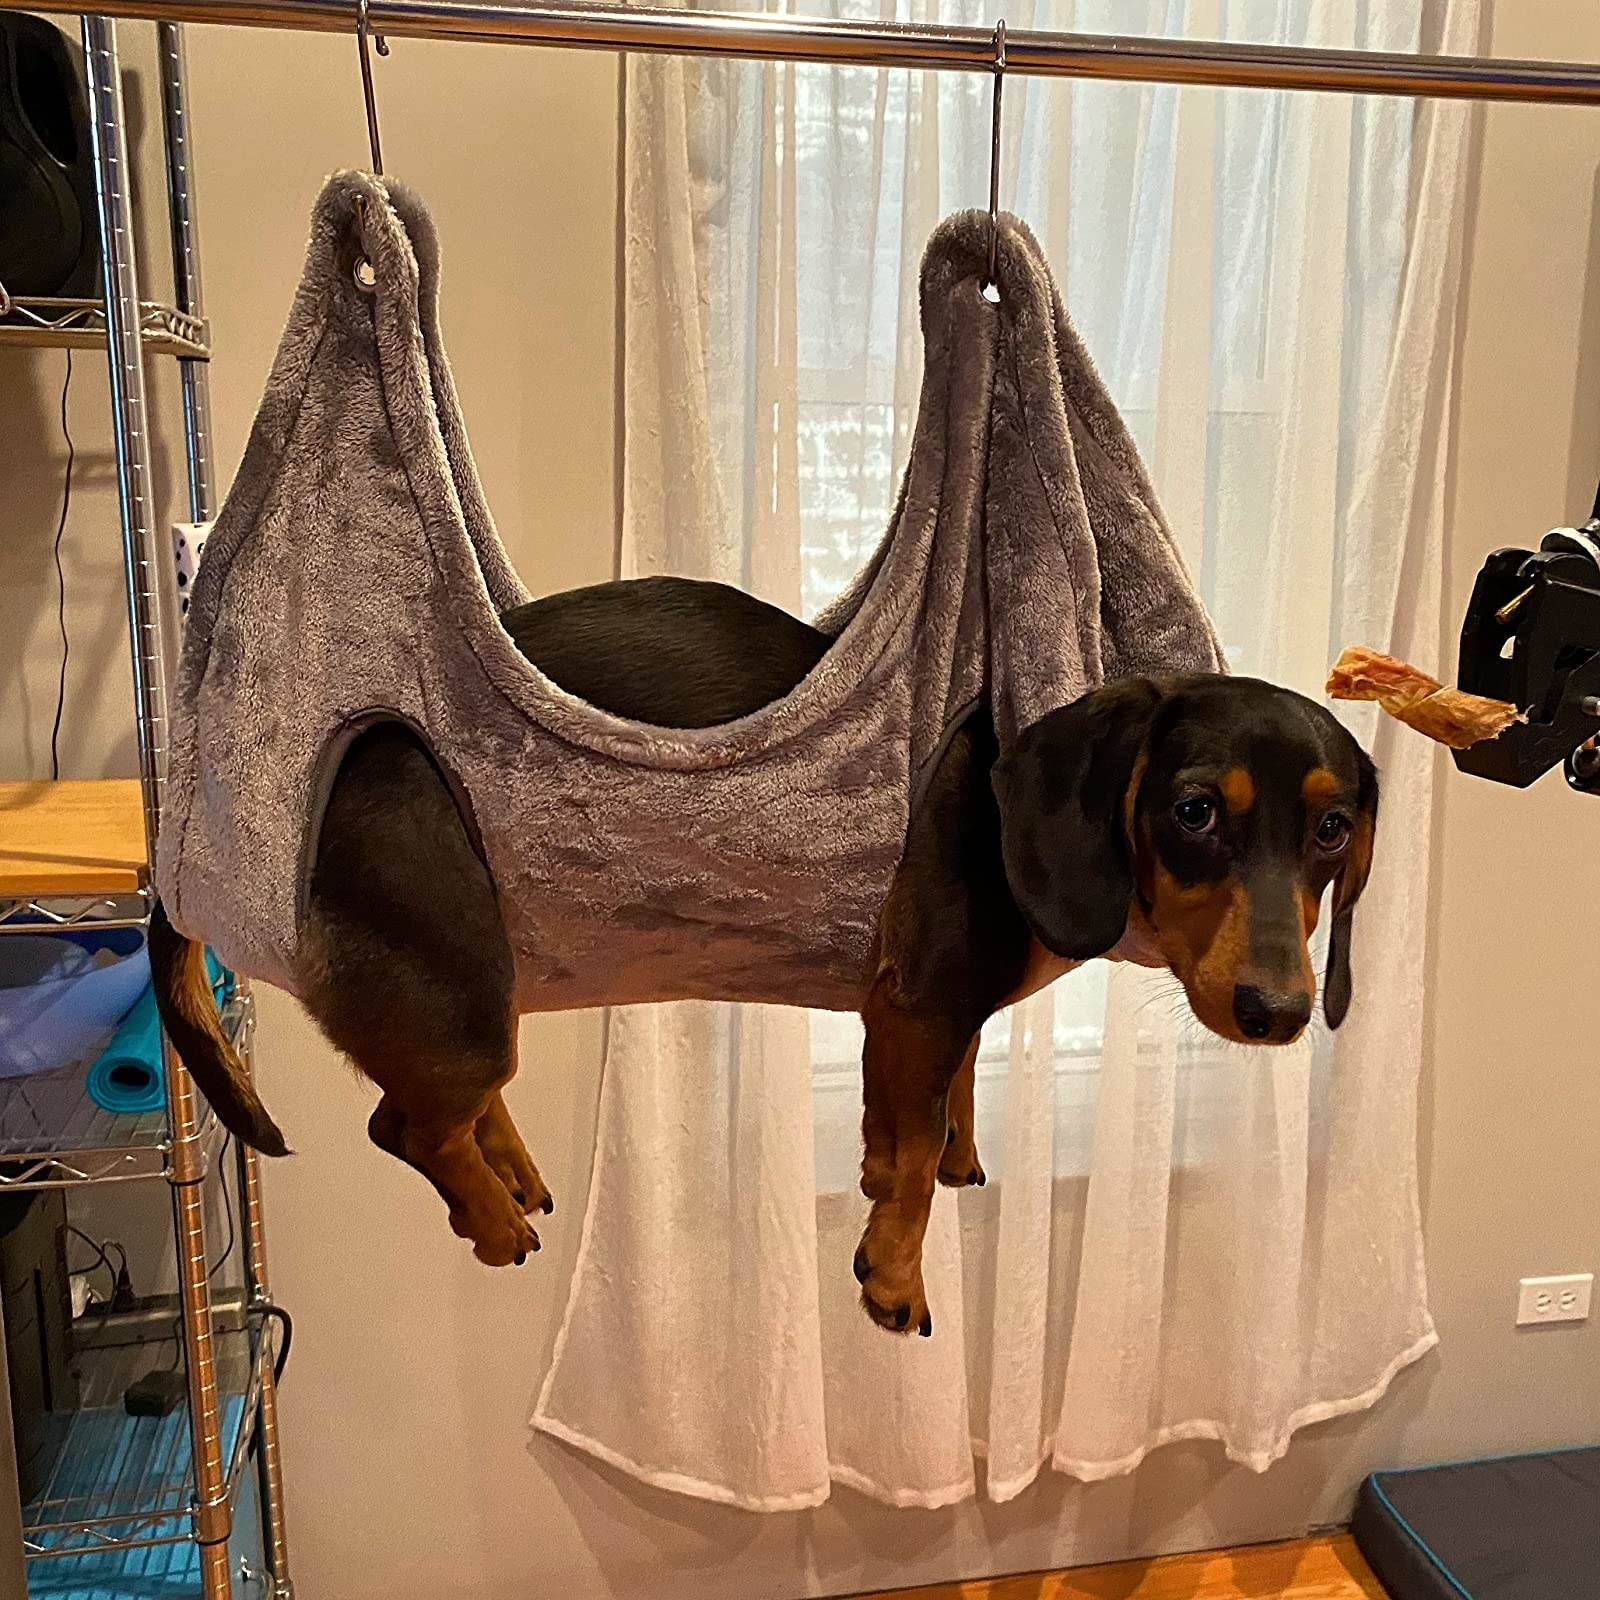 A reviewer's dachshund in the hammock with leg holes